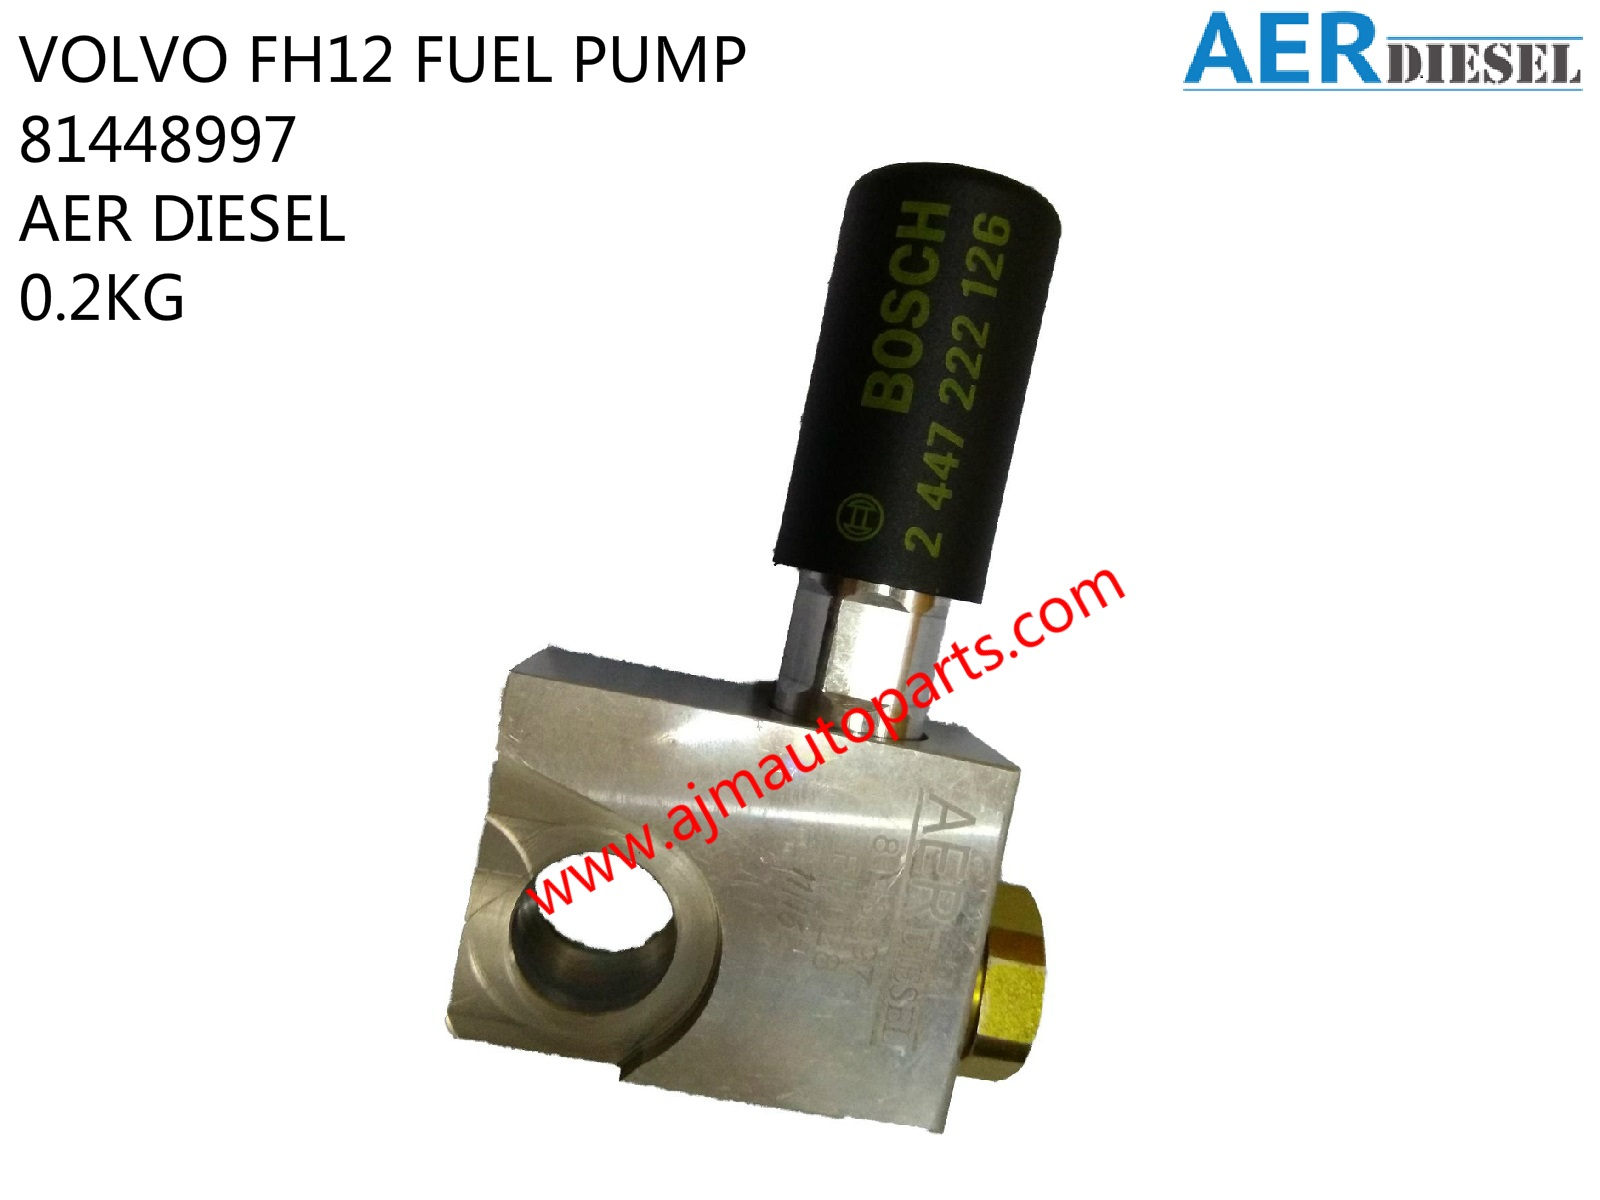 VOLVO-FH12-FUEL-PUMP-81448997